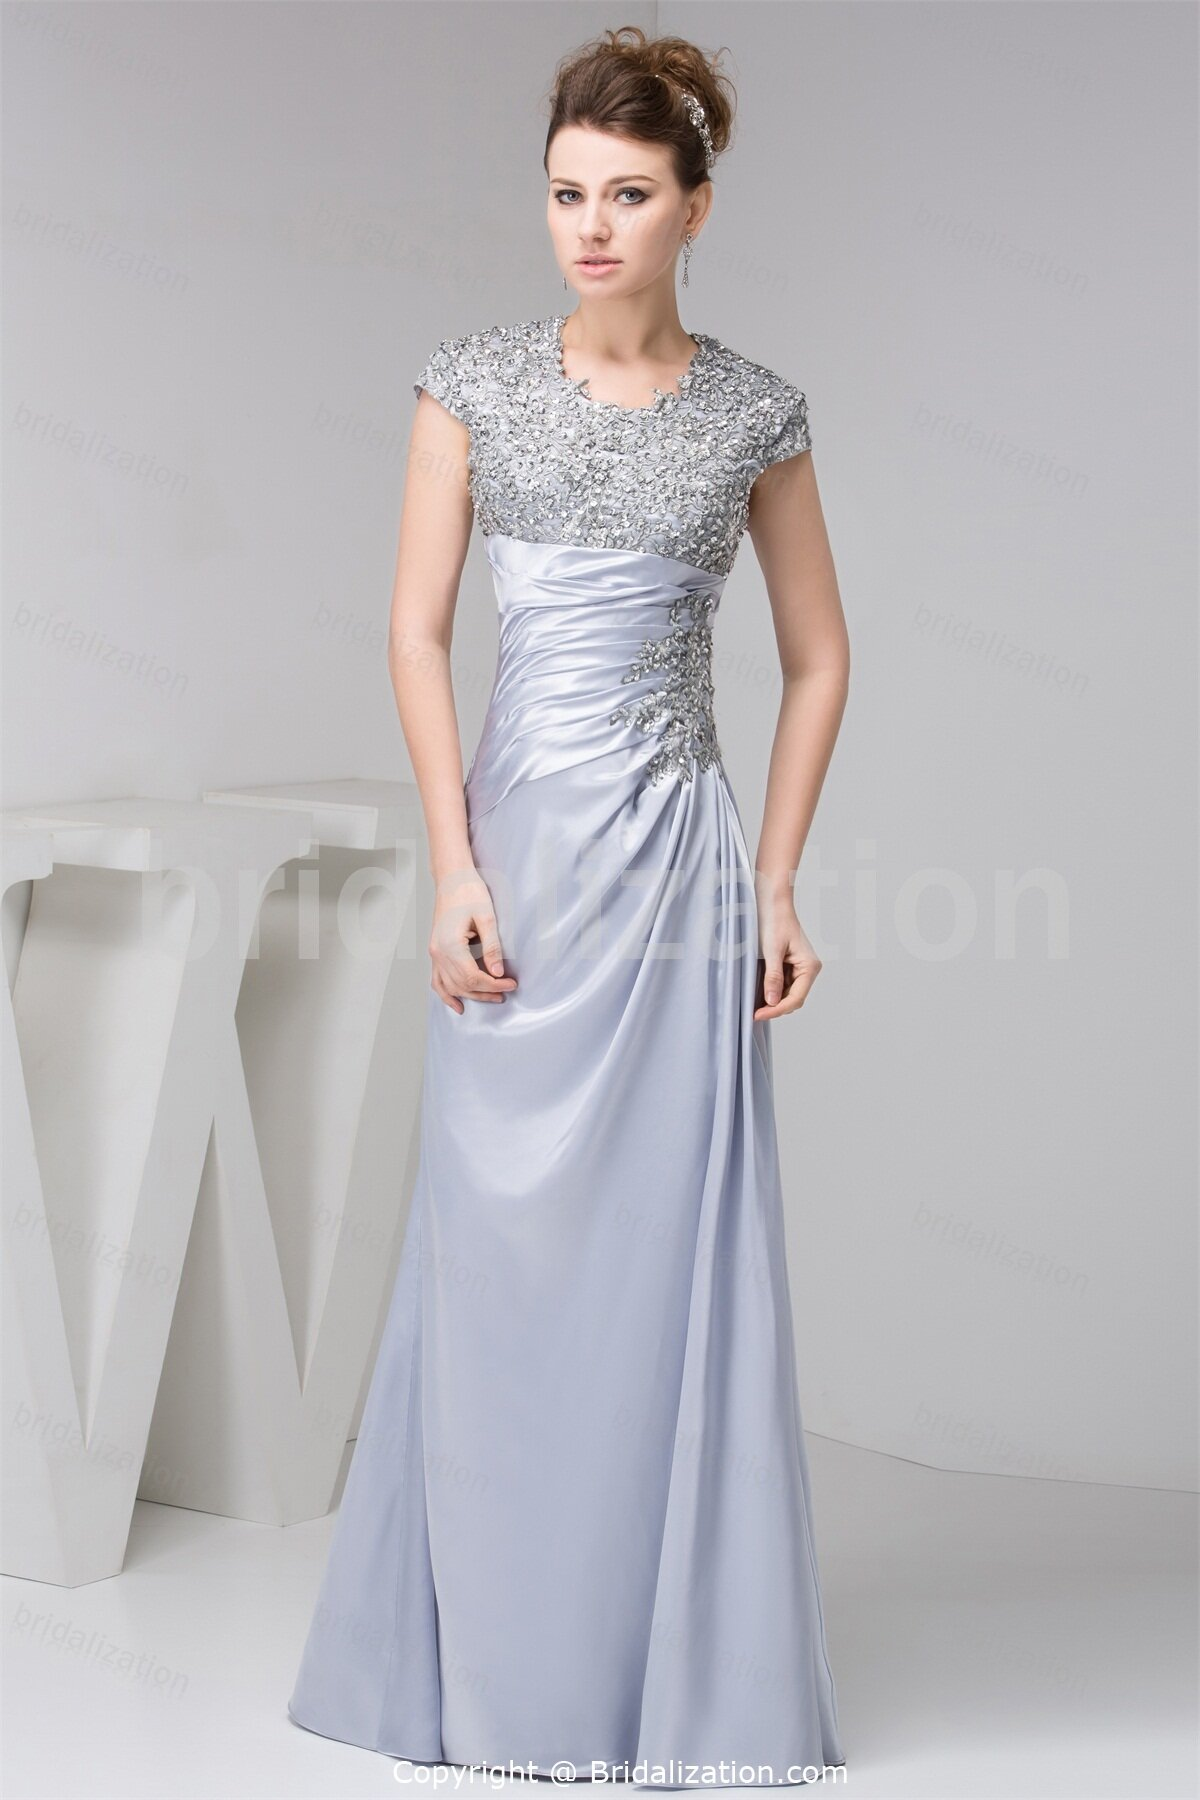 Summer wedding guest dresses 2013: Pictures ideas, Guide to buying ...